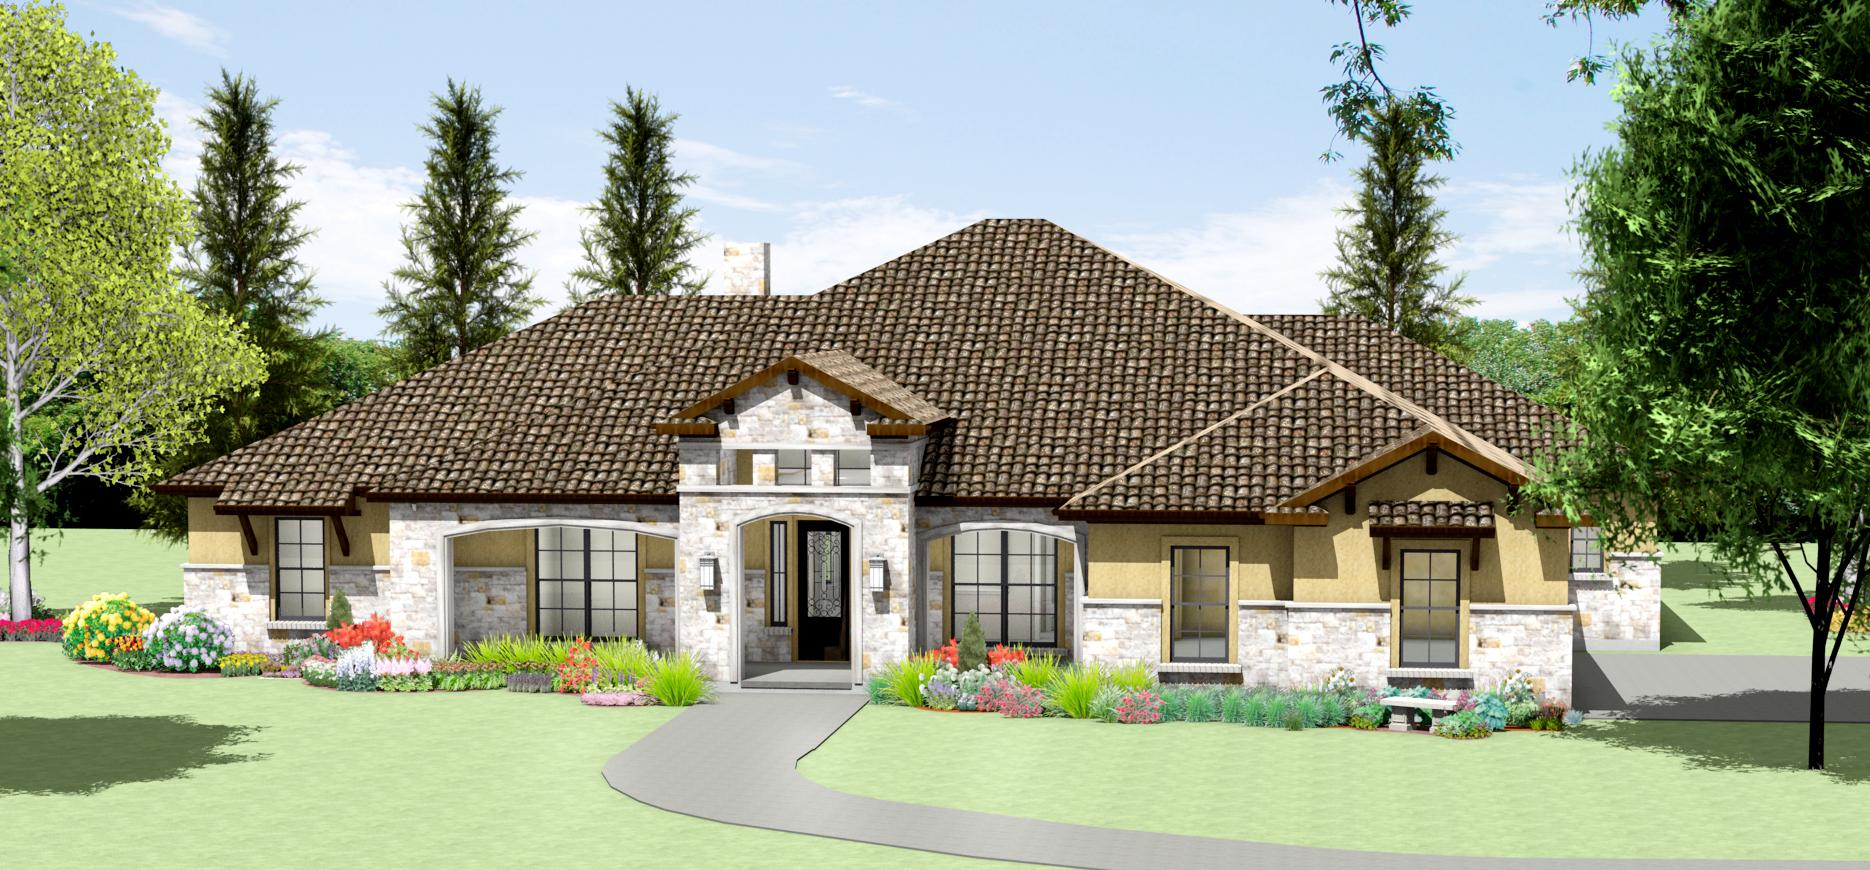 Texas hill country home design stone house floor plans for Texas hill country homes